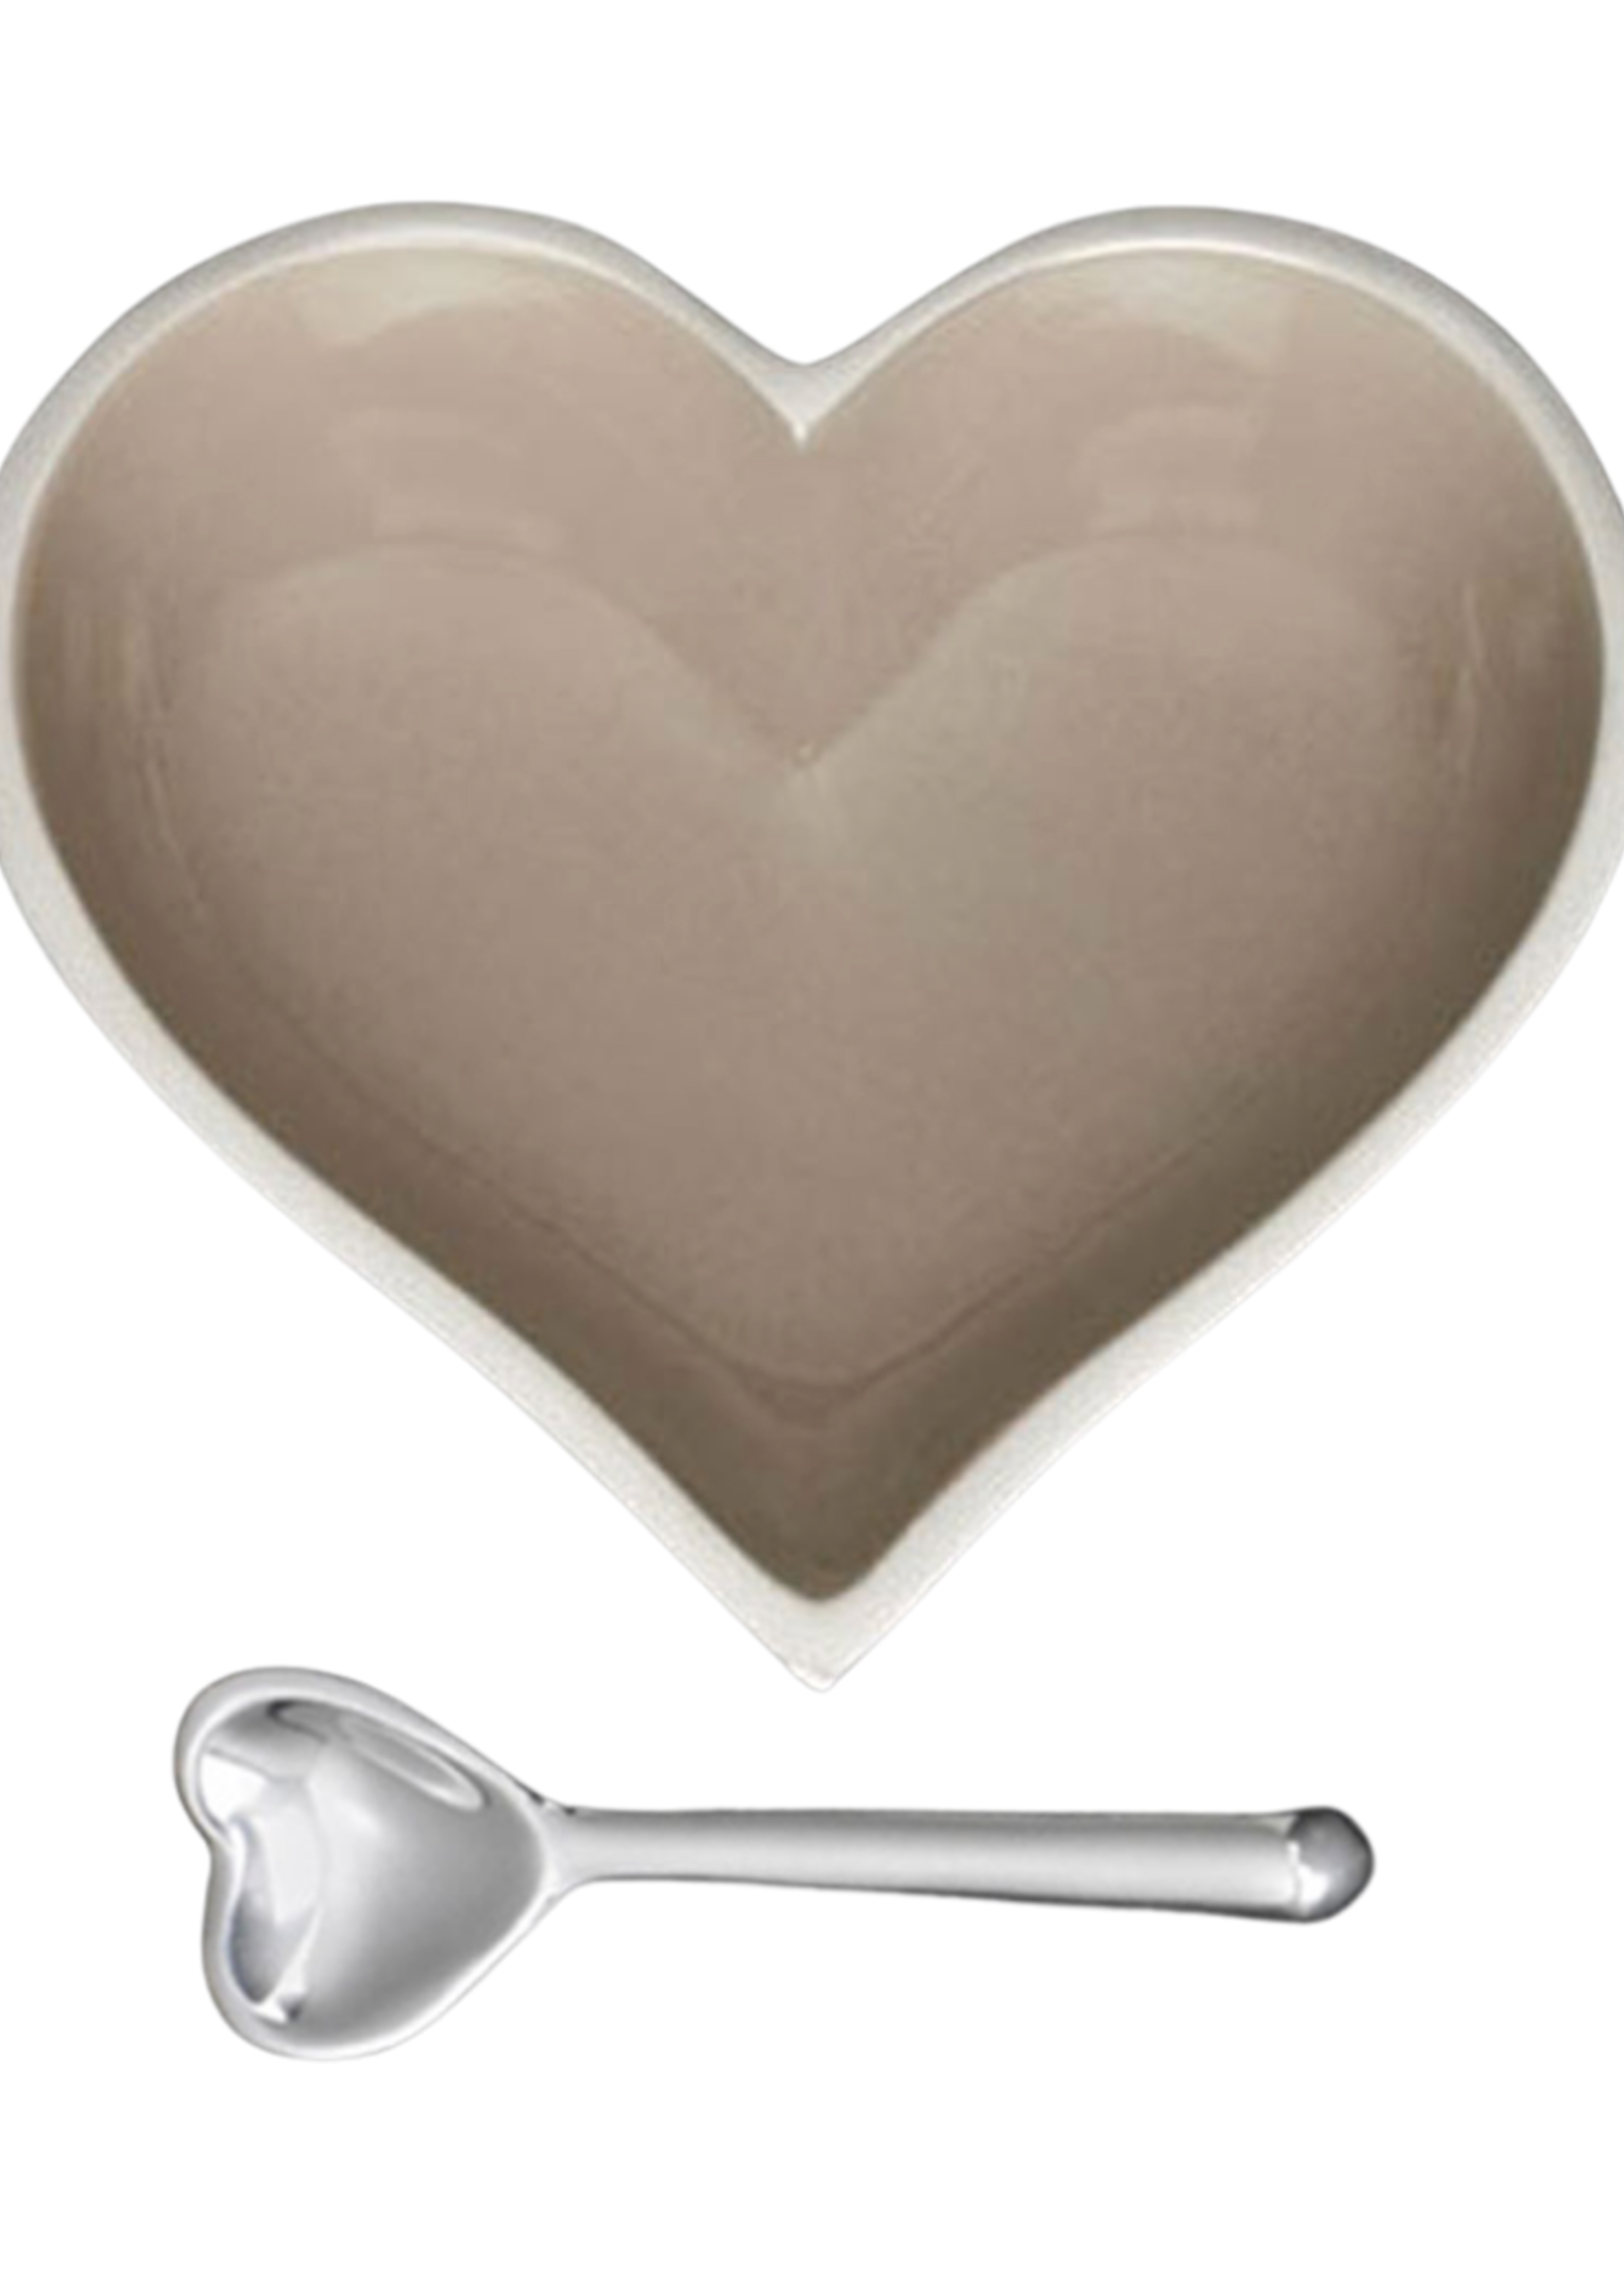 Happy Heart Bowl w Spoon // Taupe